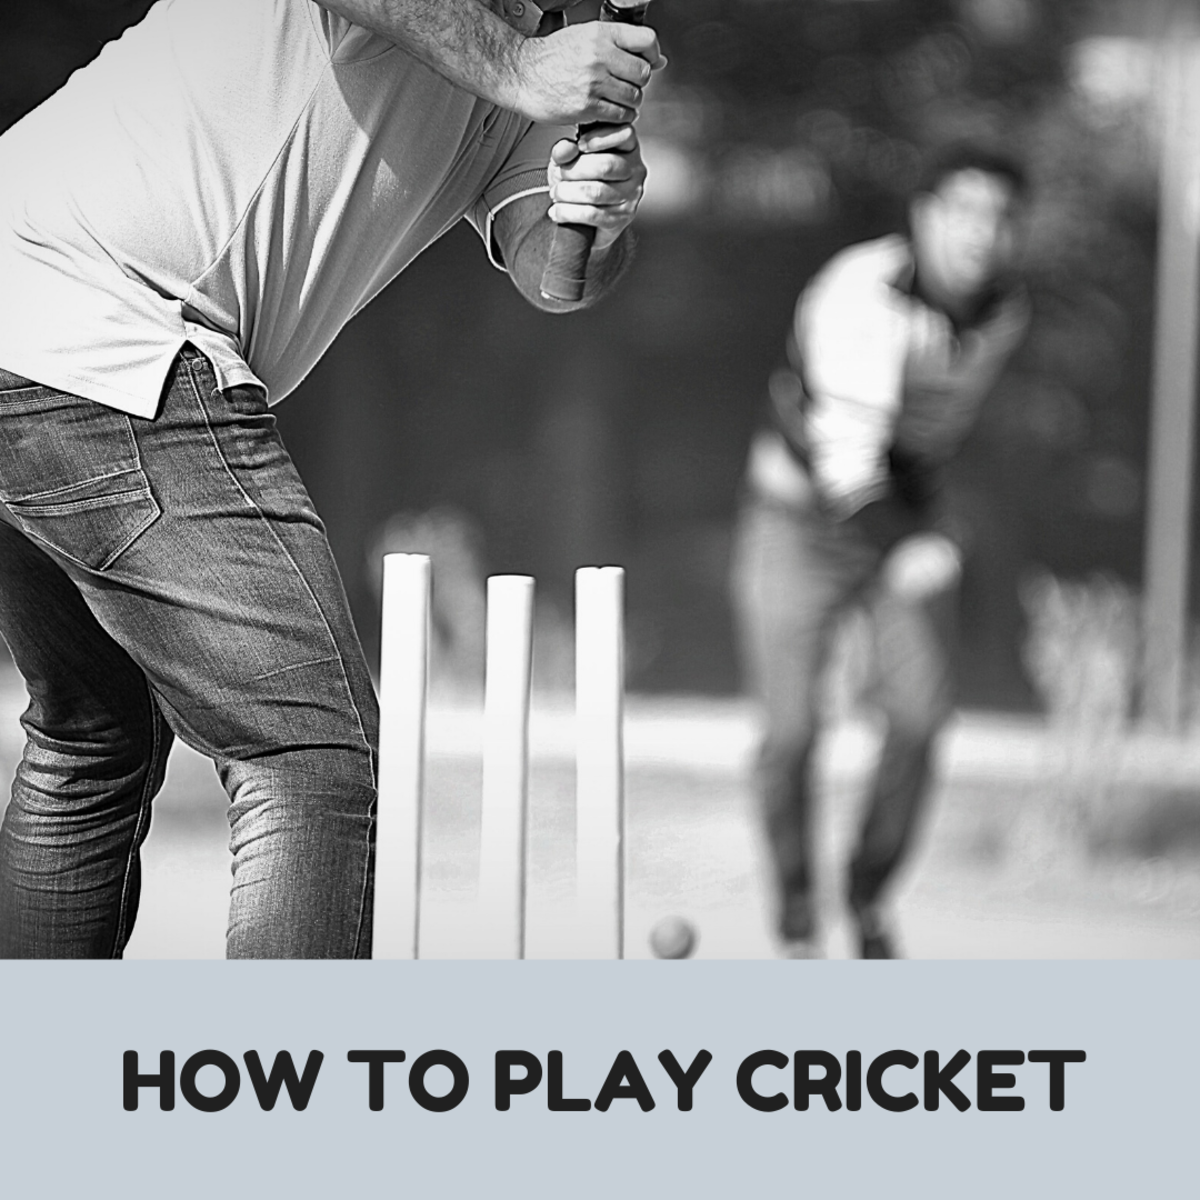 How to Play Cricket: A Guide for Beginners